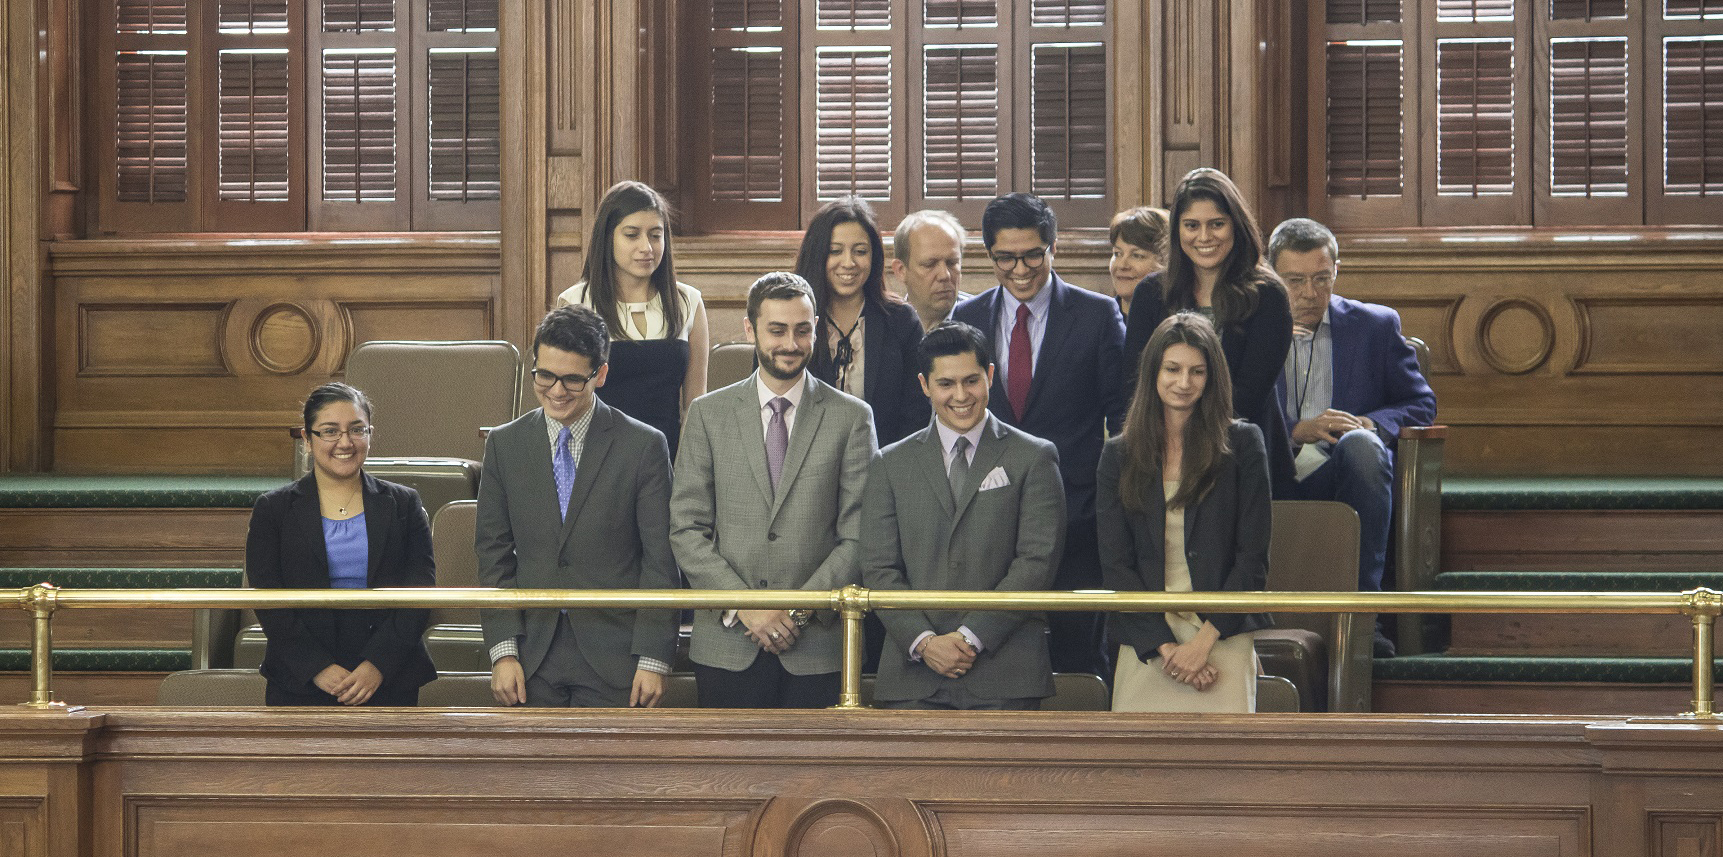 Sam Houston Austin Internship Program Students Honored on Senate Floor